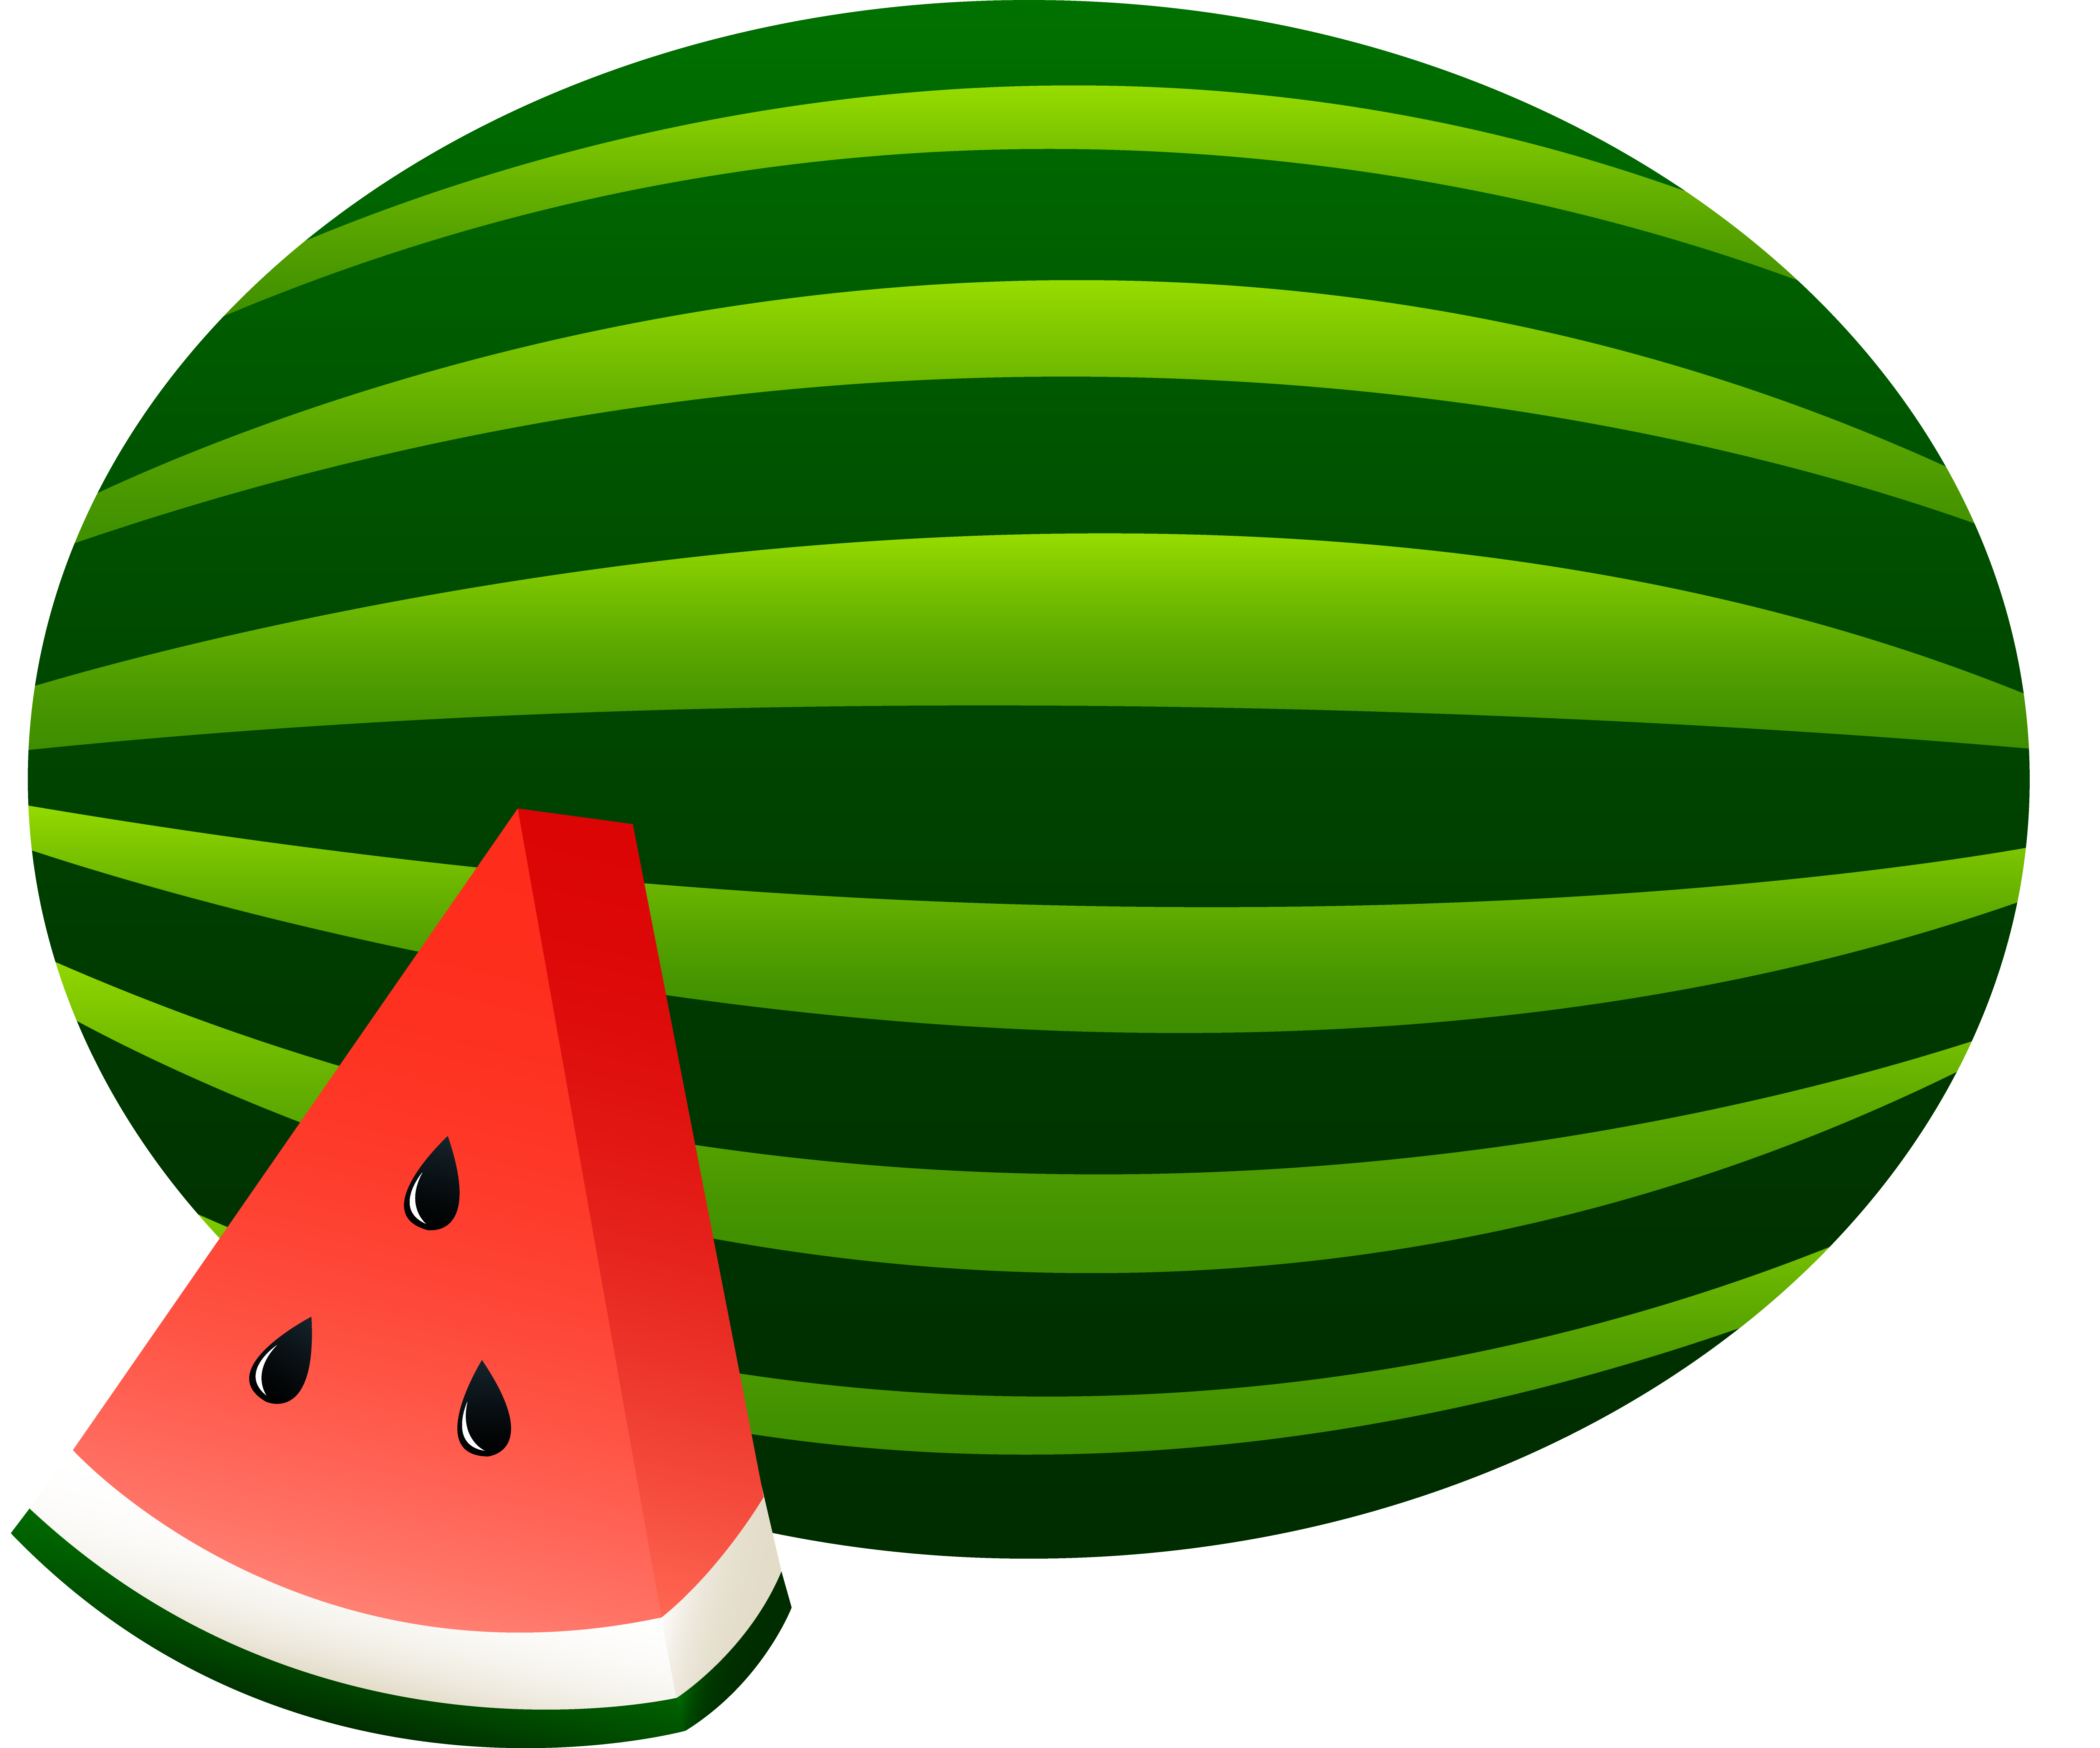 vector royalty free library Watermelon clipart. Panda free images